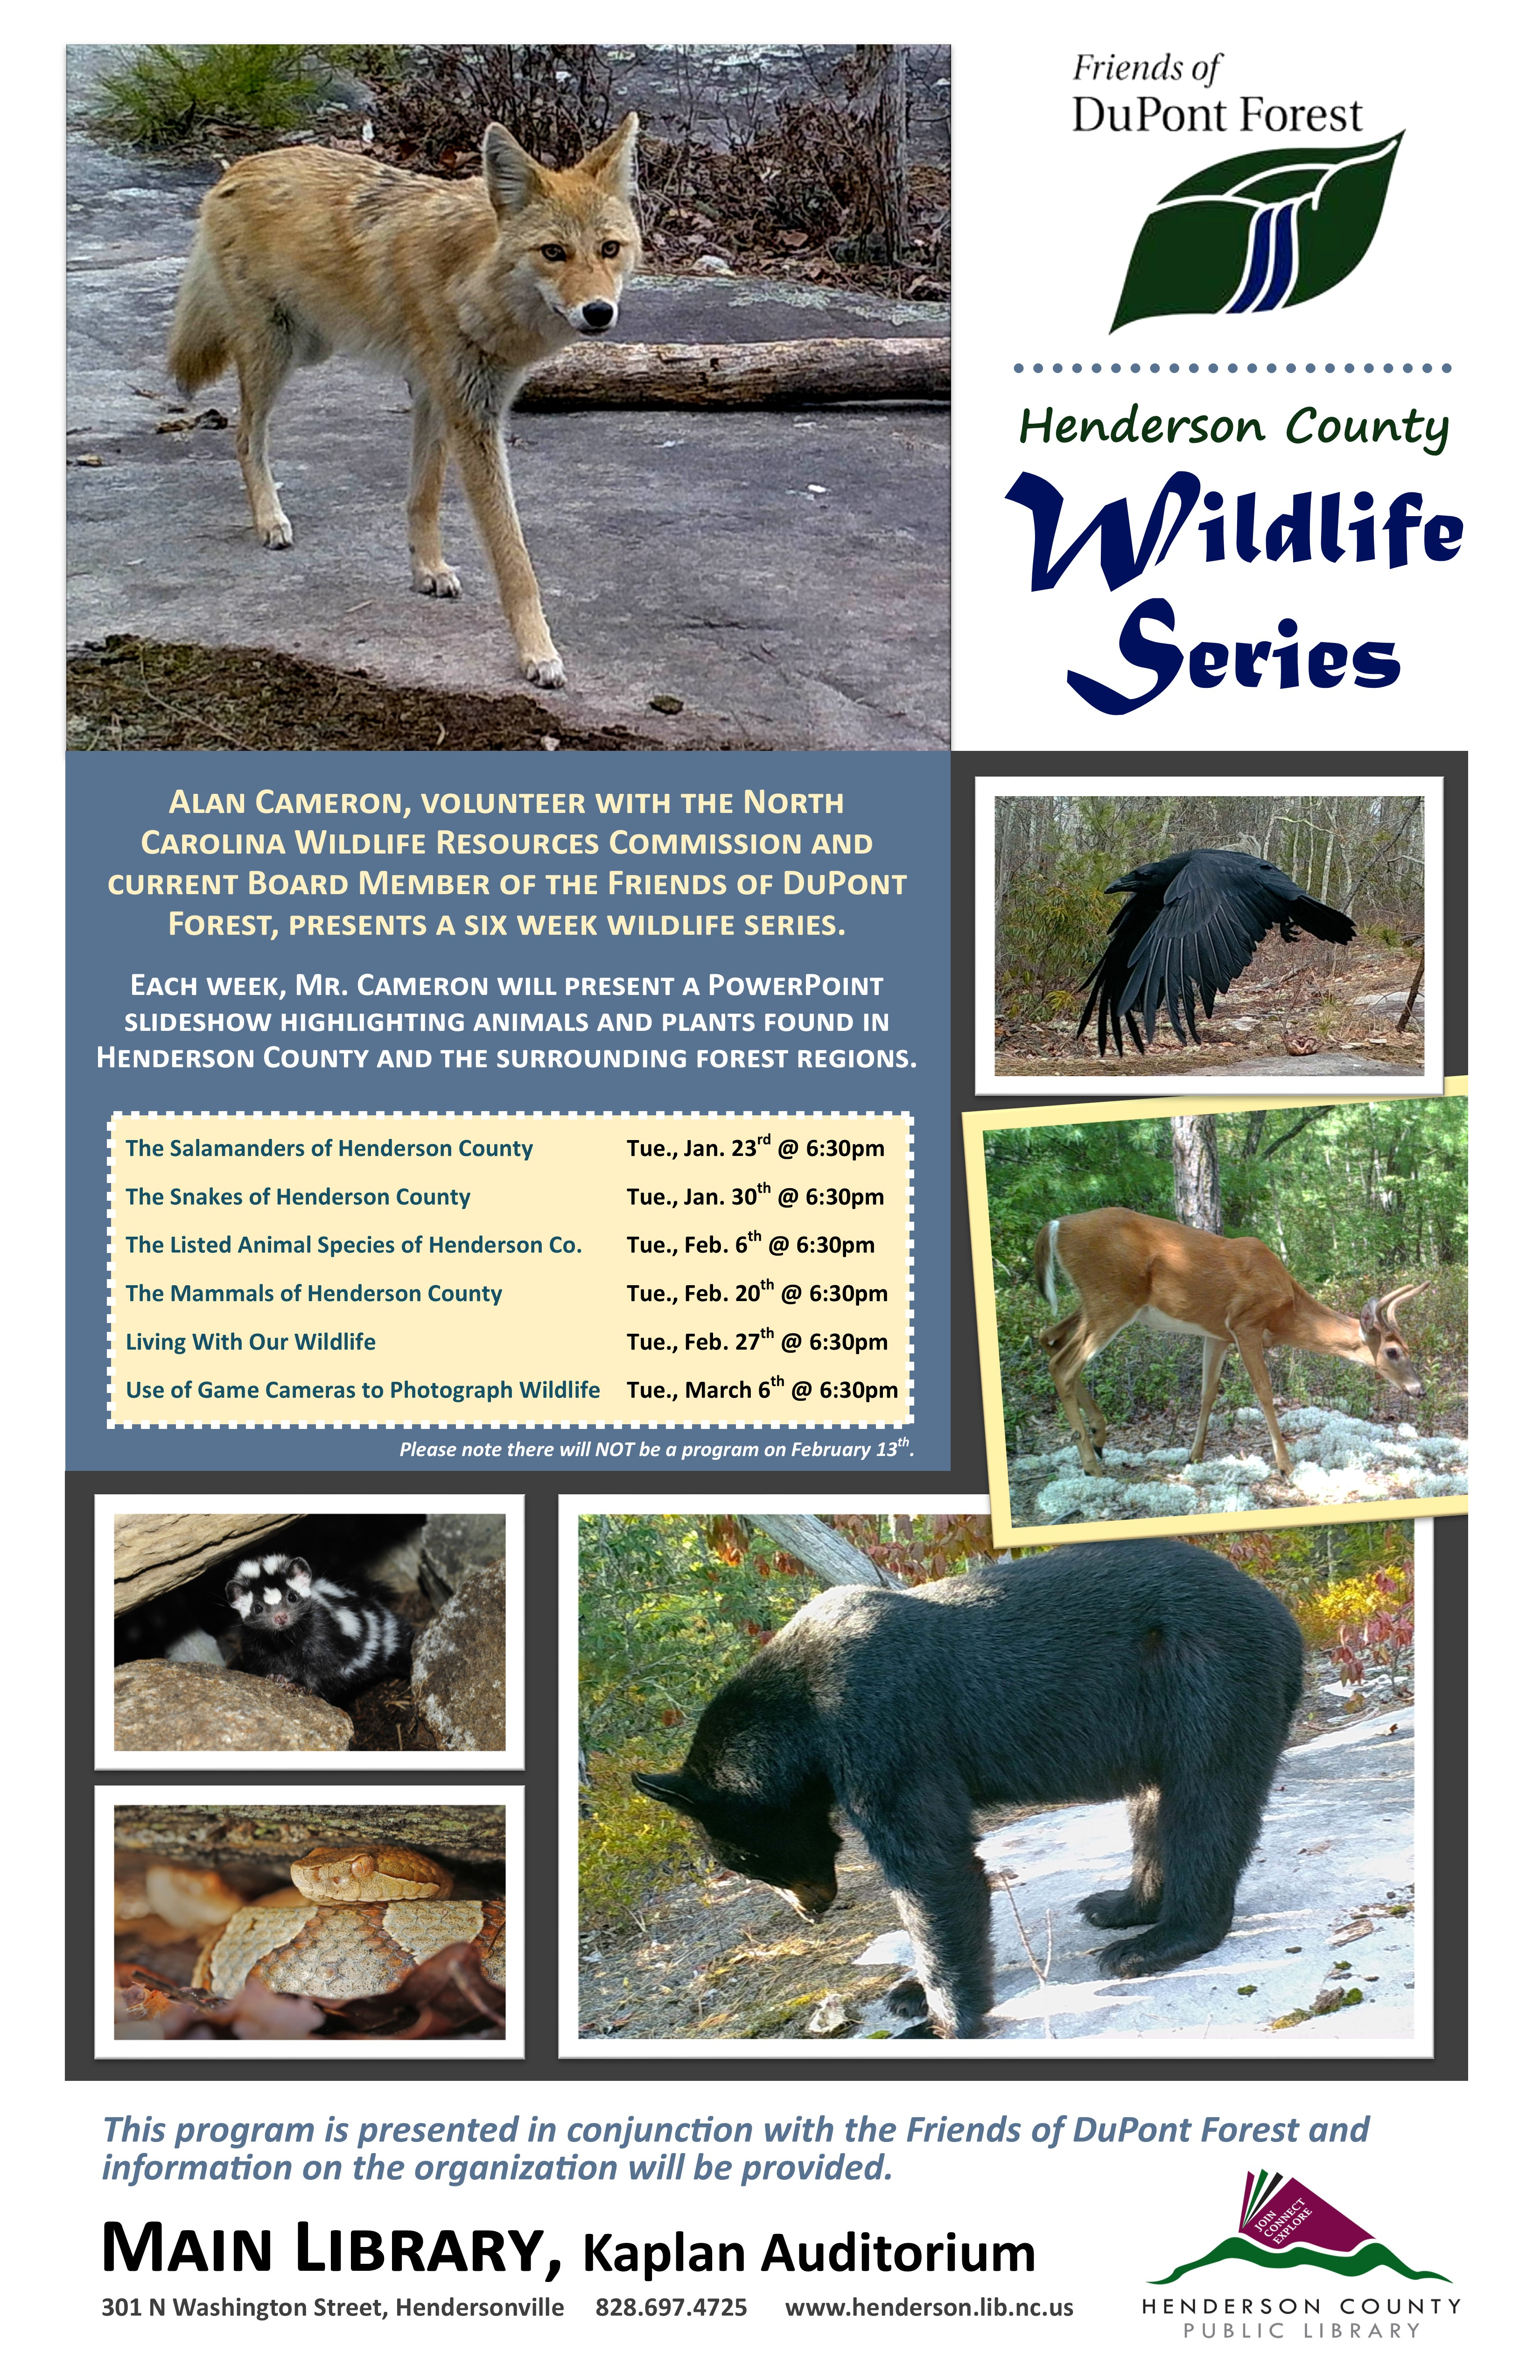 Henderson County Wildlife Series:  The Mammals of Henderson County